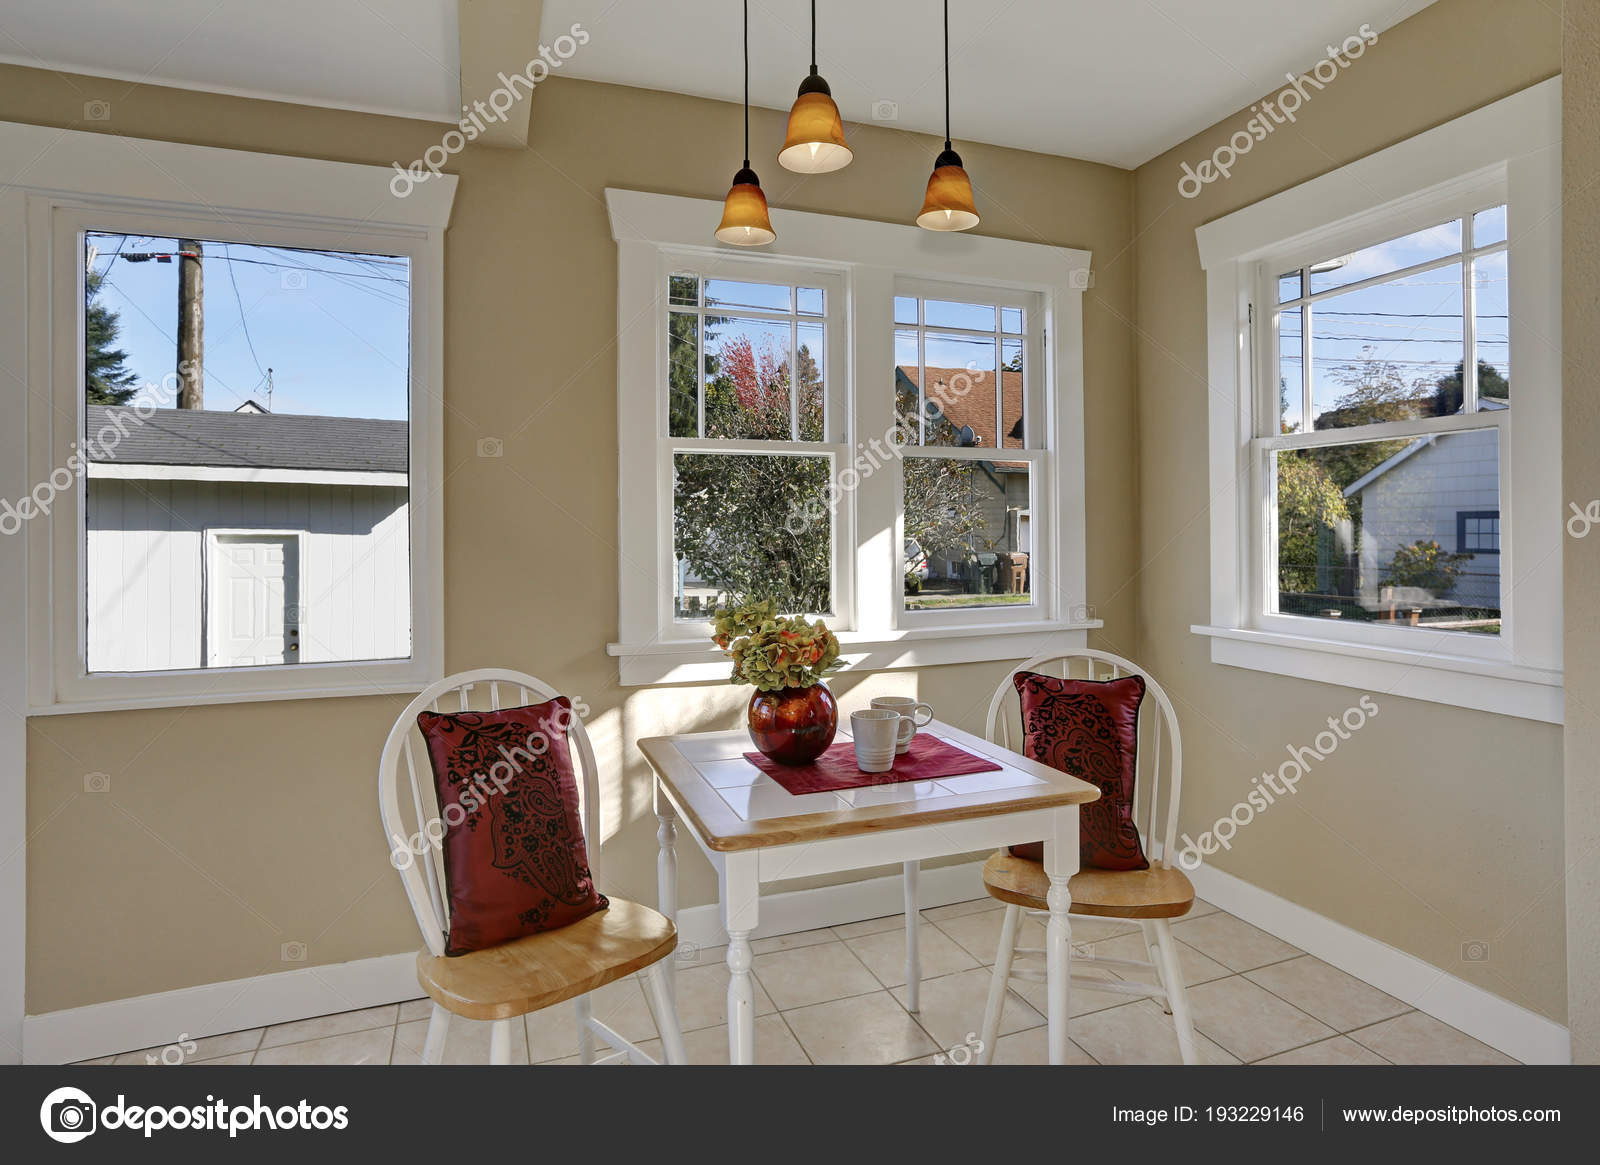 Light and bright breakfast nook with a